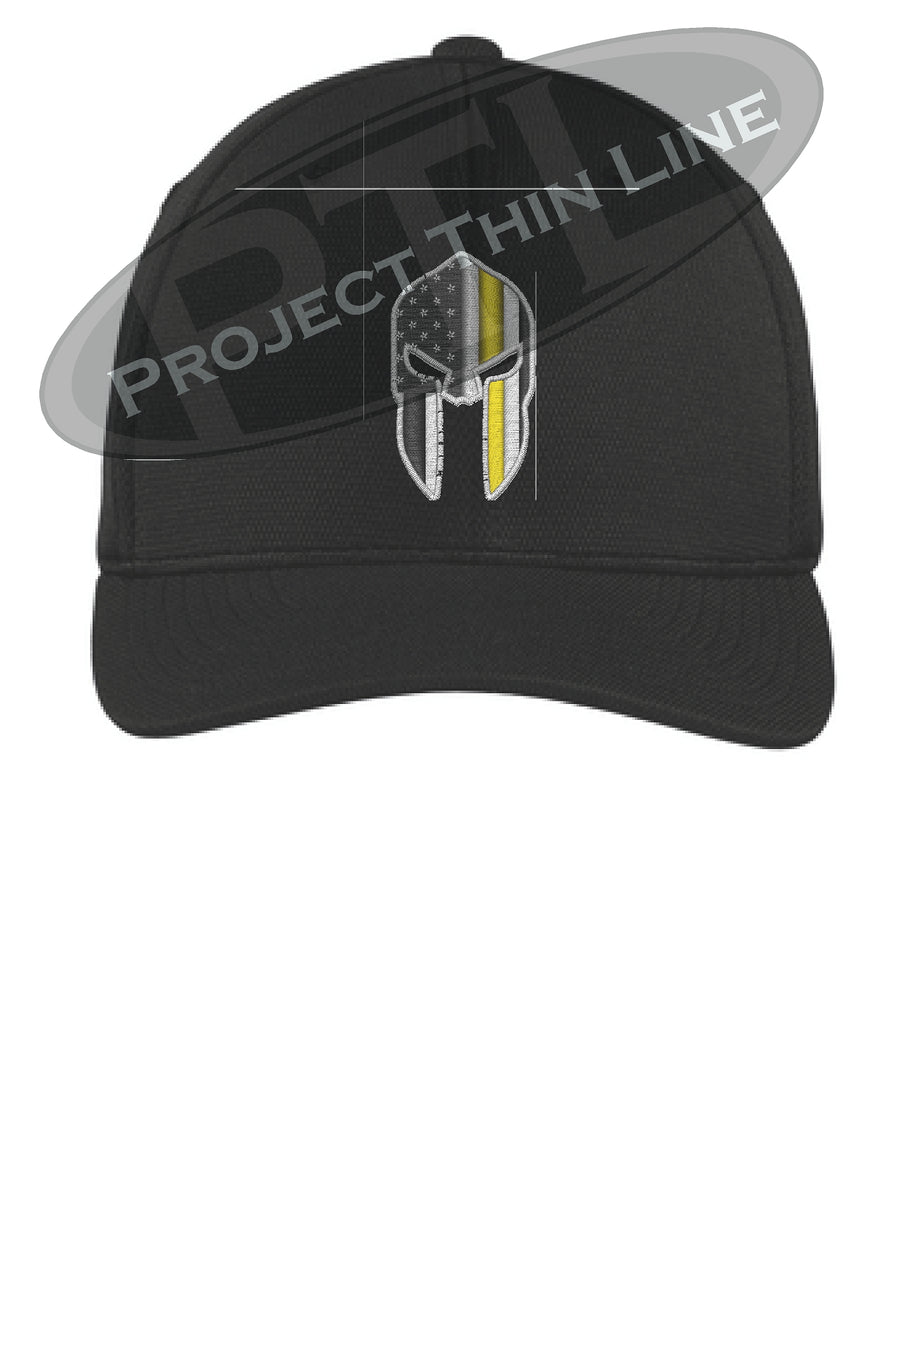 Black Thin YELLOW Line Spartan inlayed with the American Flag Flex Fit Fitted  Hat 2209a31eb2b